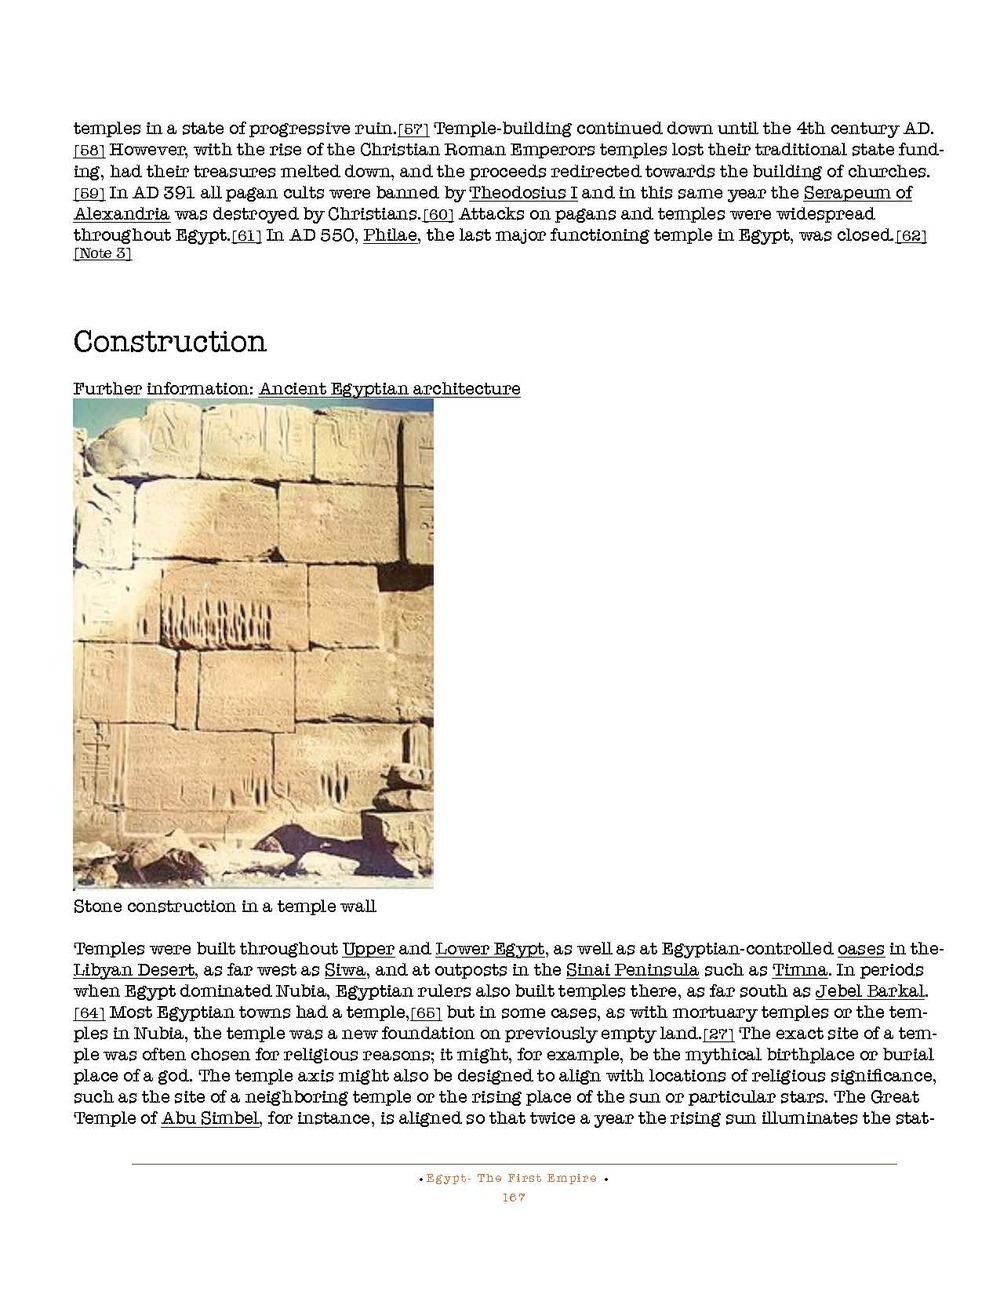 HOCE- Egypt  (First Empire) Notes_Page_167.jpg